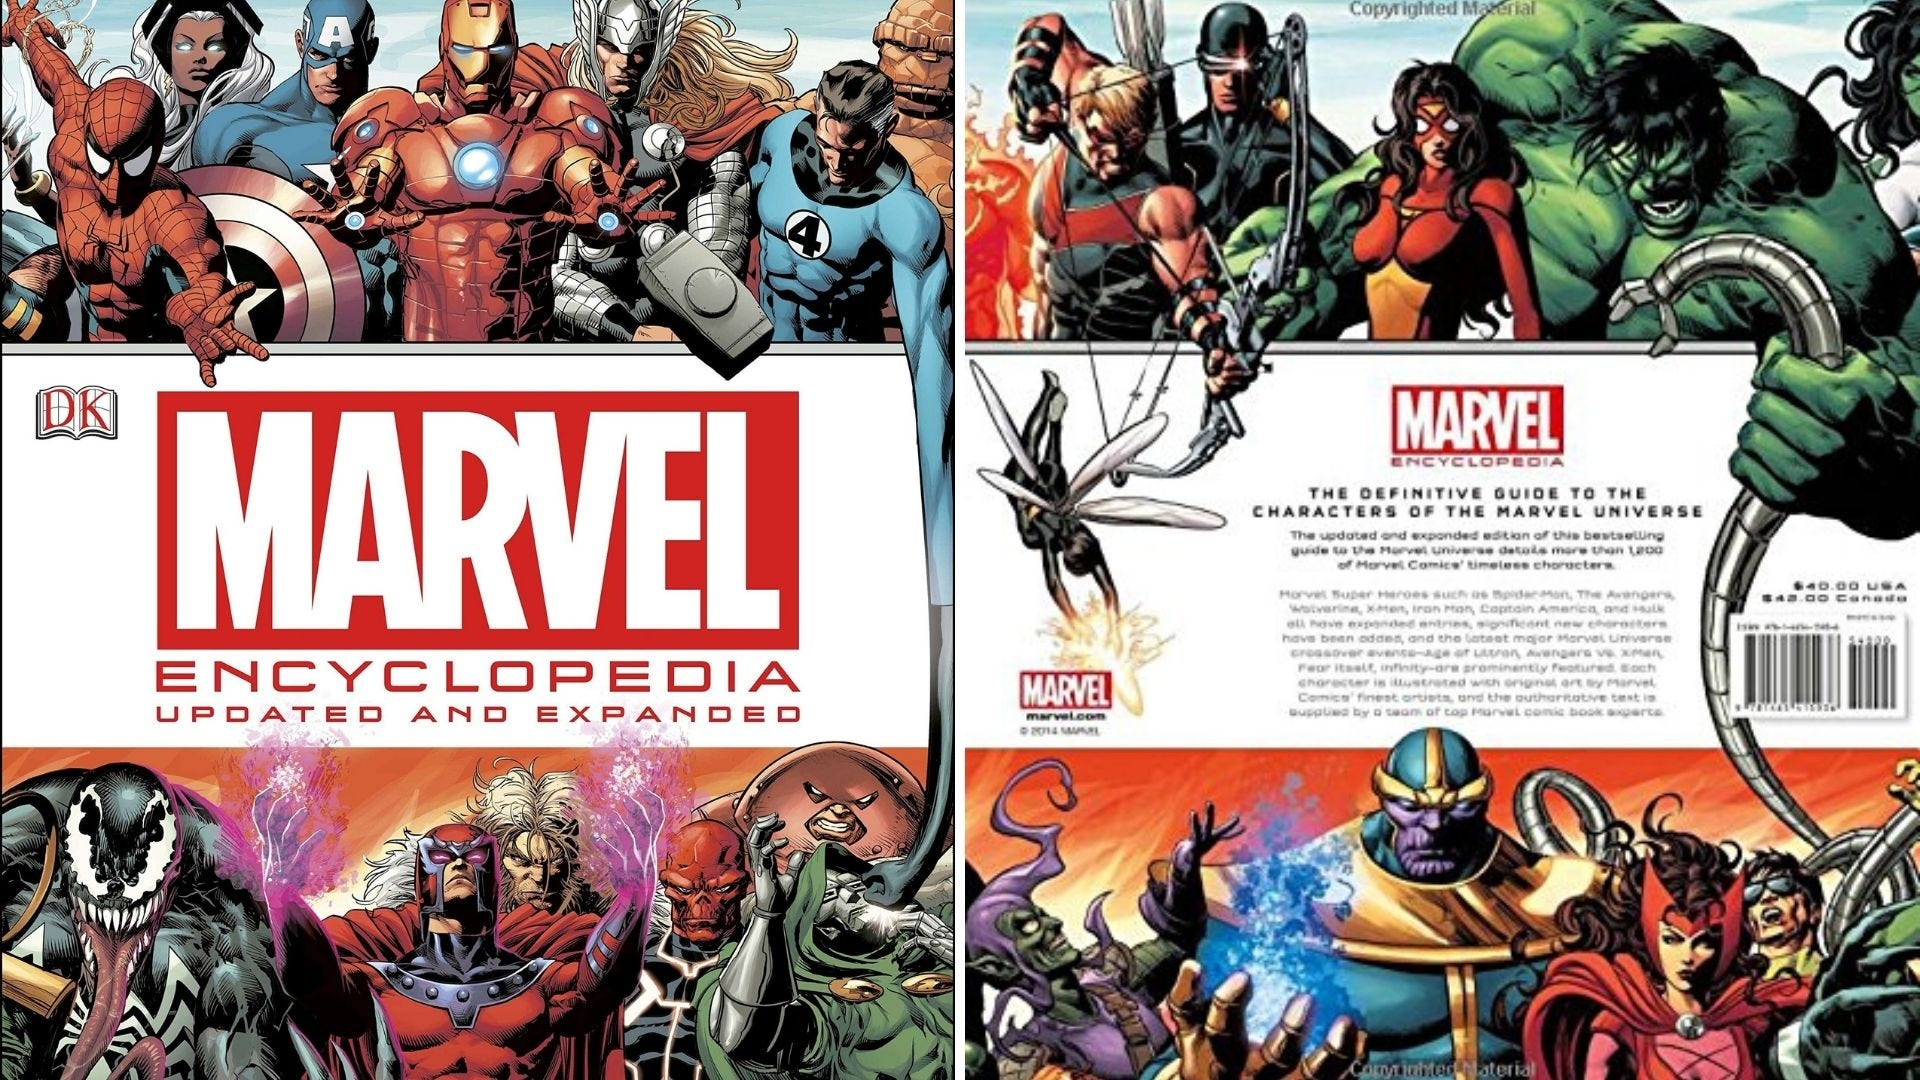 The front and back cover of Marvel Encyclopedia